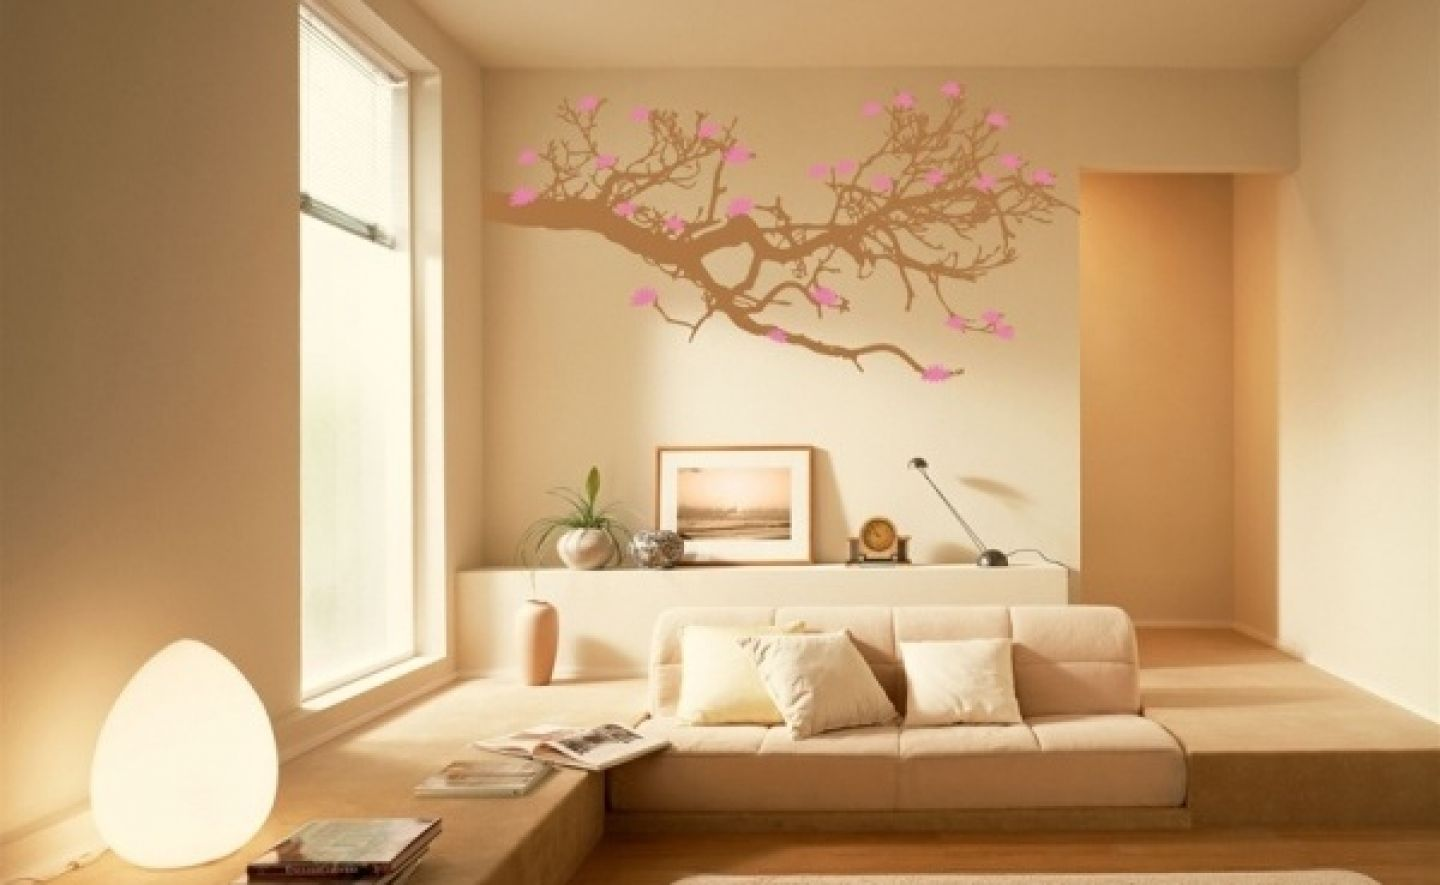 Interior Painting Ideas  Wallpaper Interior Designs Wall Painting Entrancing Bedroom Paint Designs Review